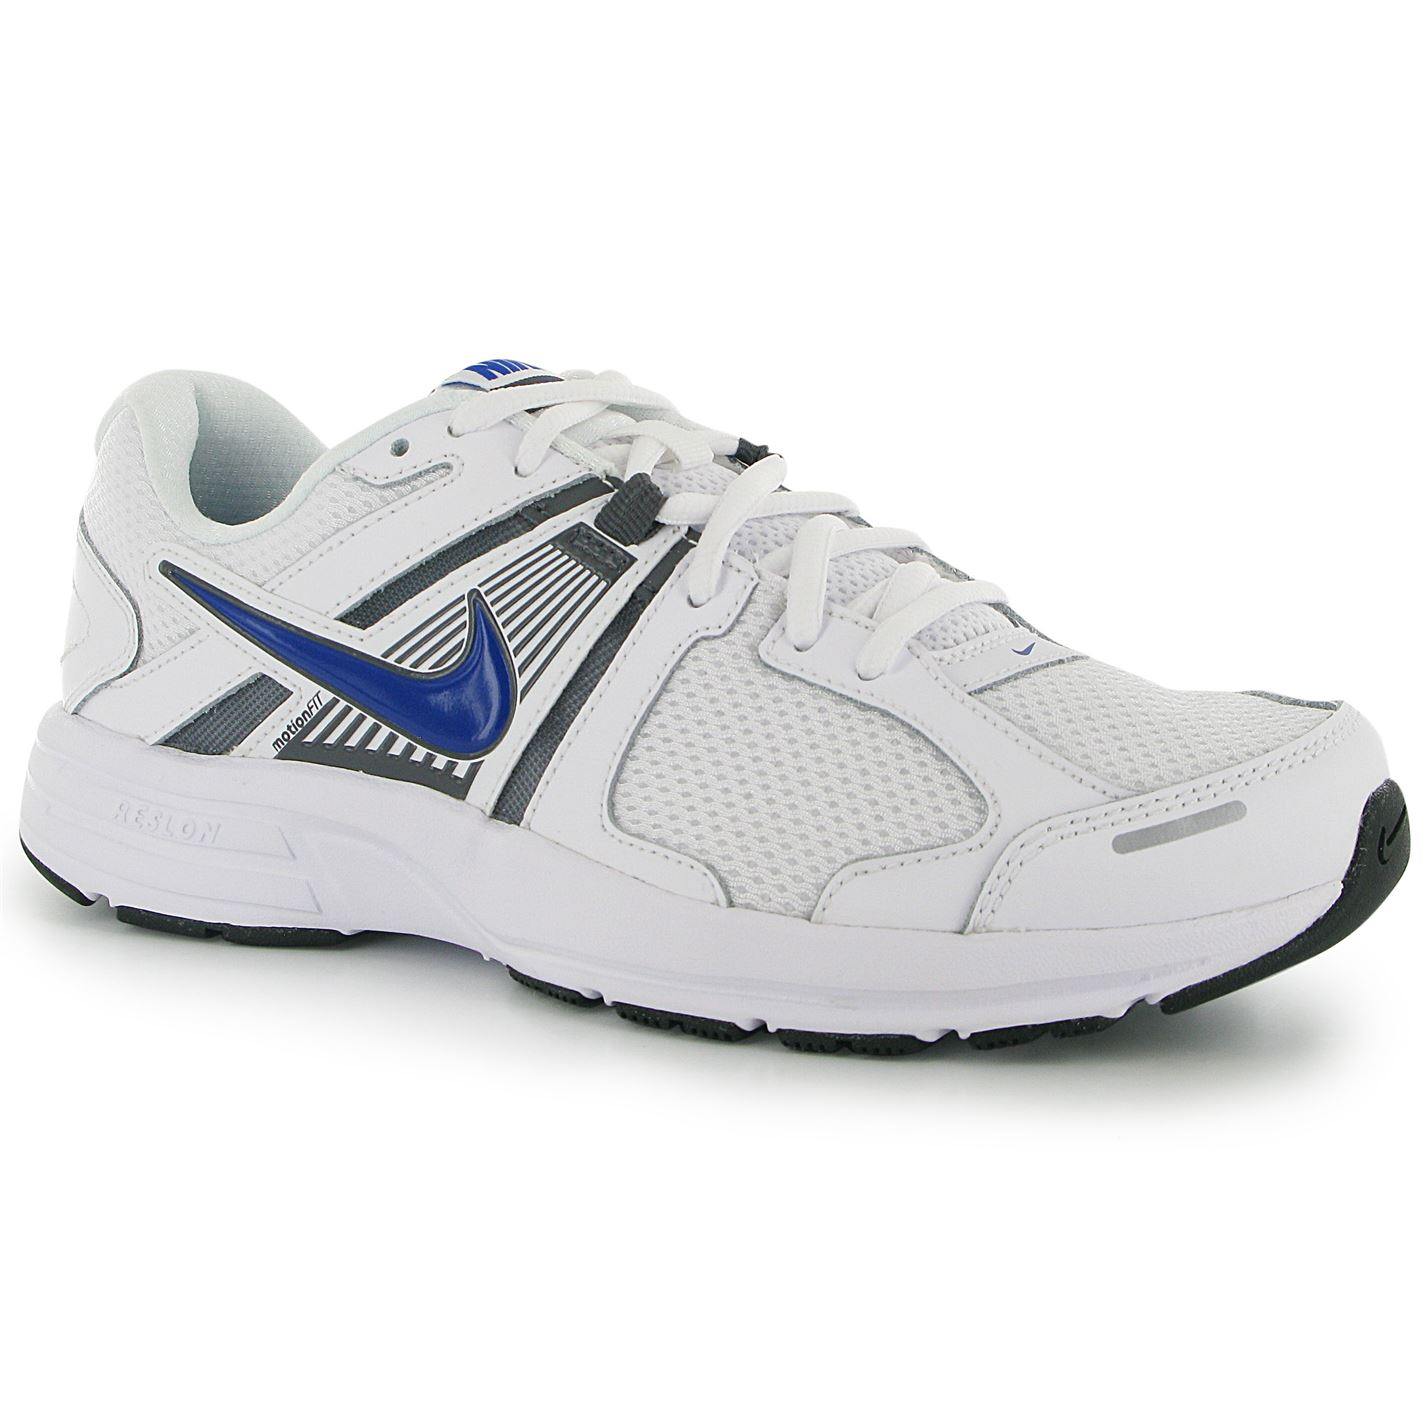 Nike running shoes newest